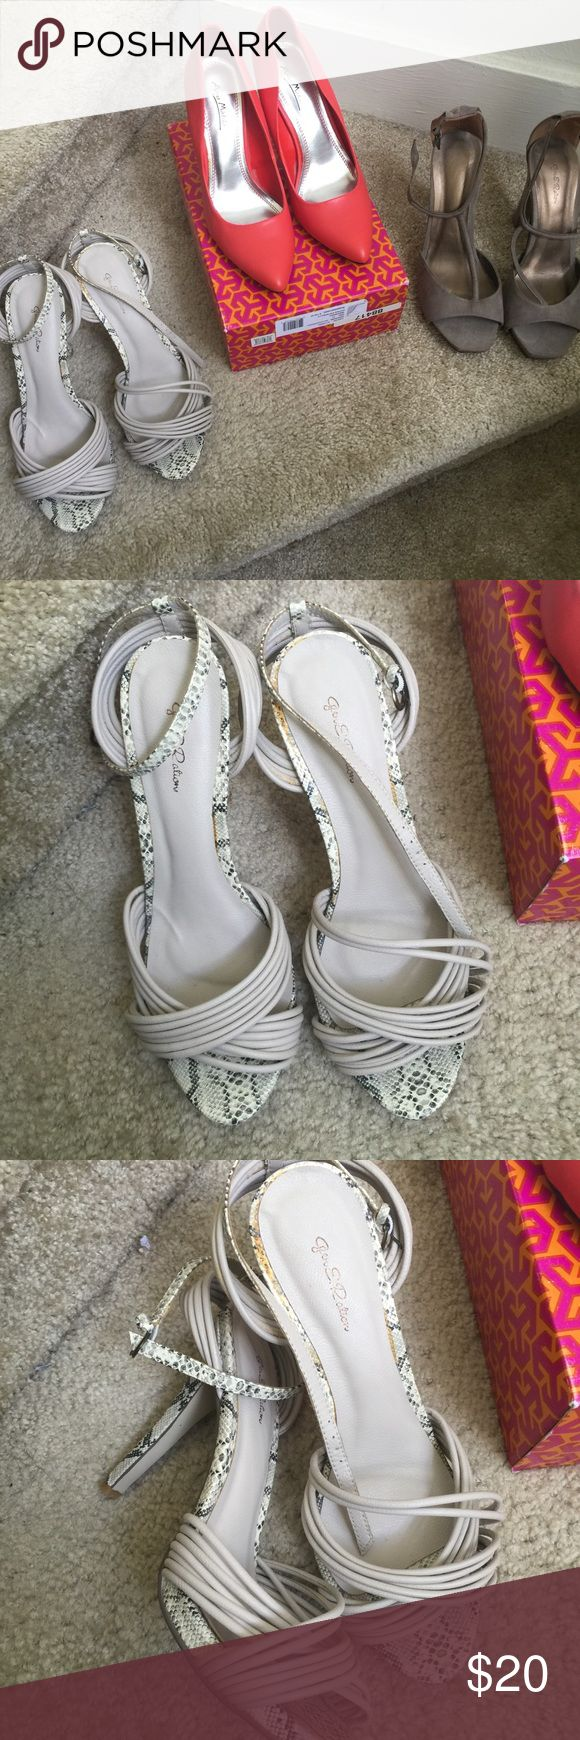 3 pair of women size 10 shoes for the price of one New Orange pumps: never worn, grayish snake skin heels worn once, gray and rose gold trimmed heels worn one time. All shoes are beautiful on. All three shoes are the price of what I paid for one shoe. Shoes Heels